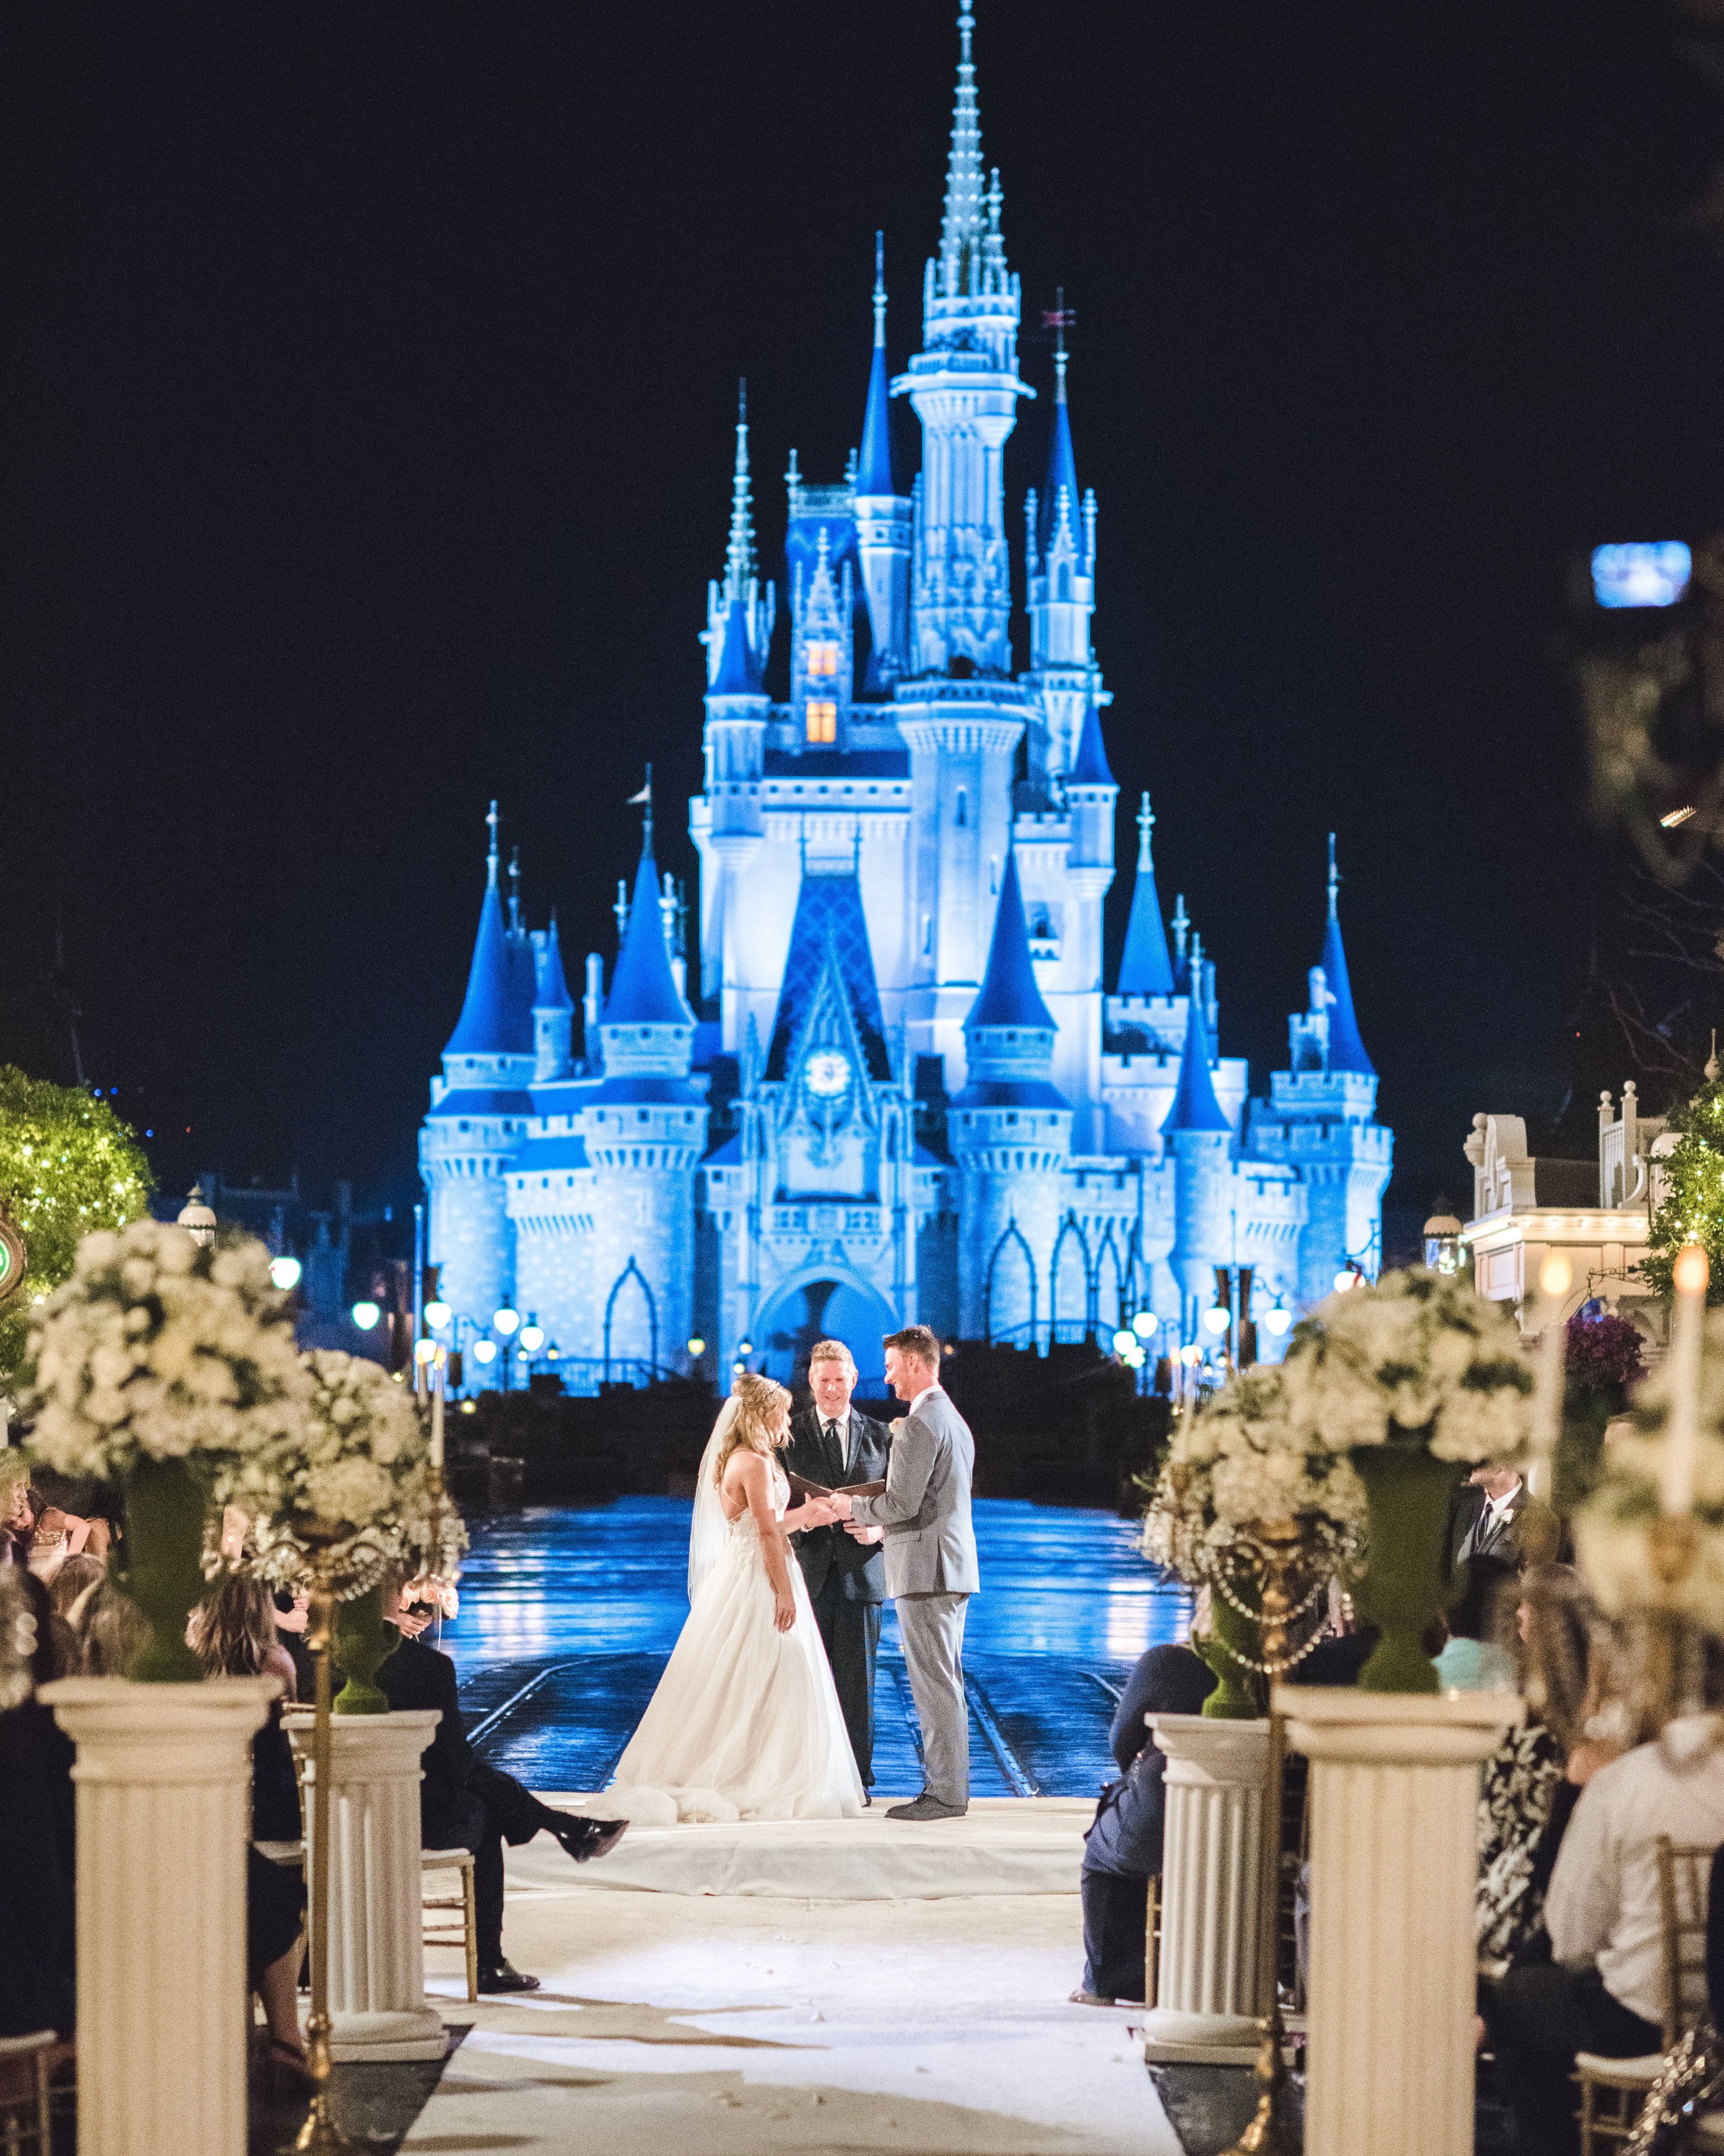 Disney Wedding Magic Kingdom Wedding Disney Wedding Venue Disney World Wedding Disney Fairy Tale Weddings